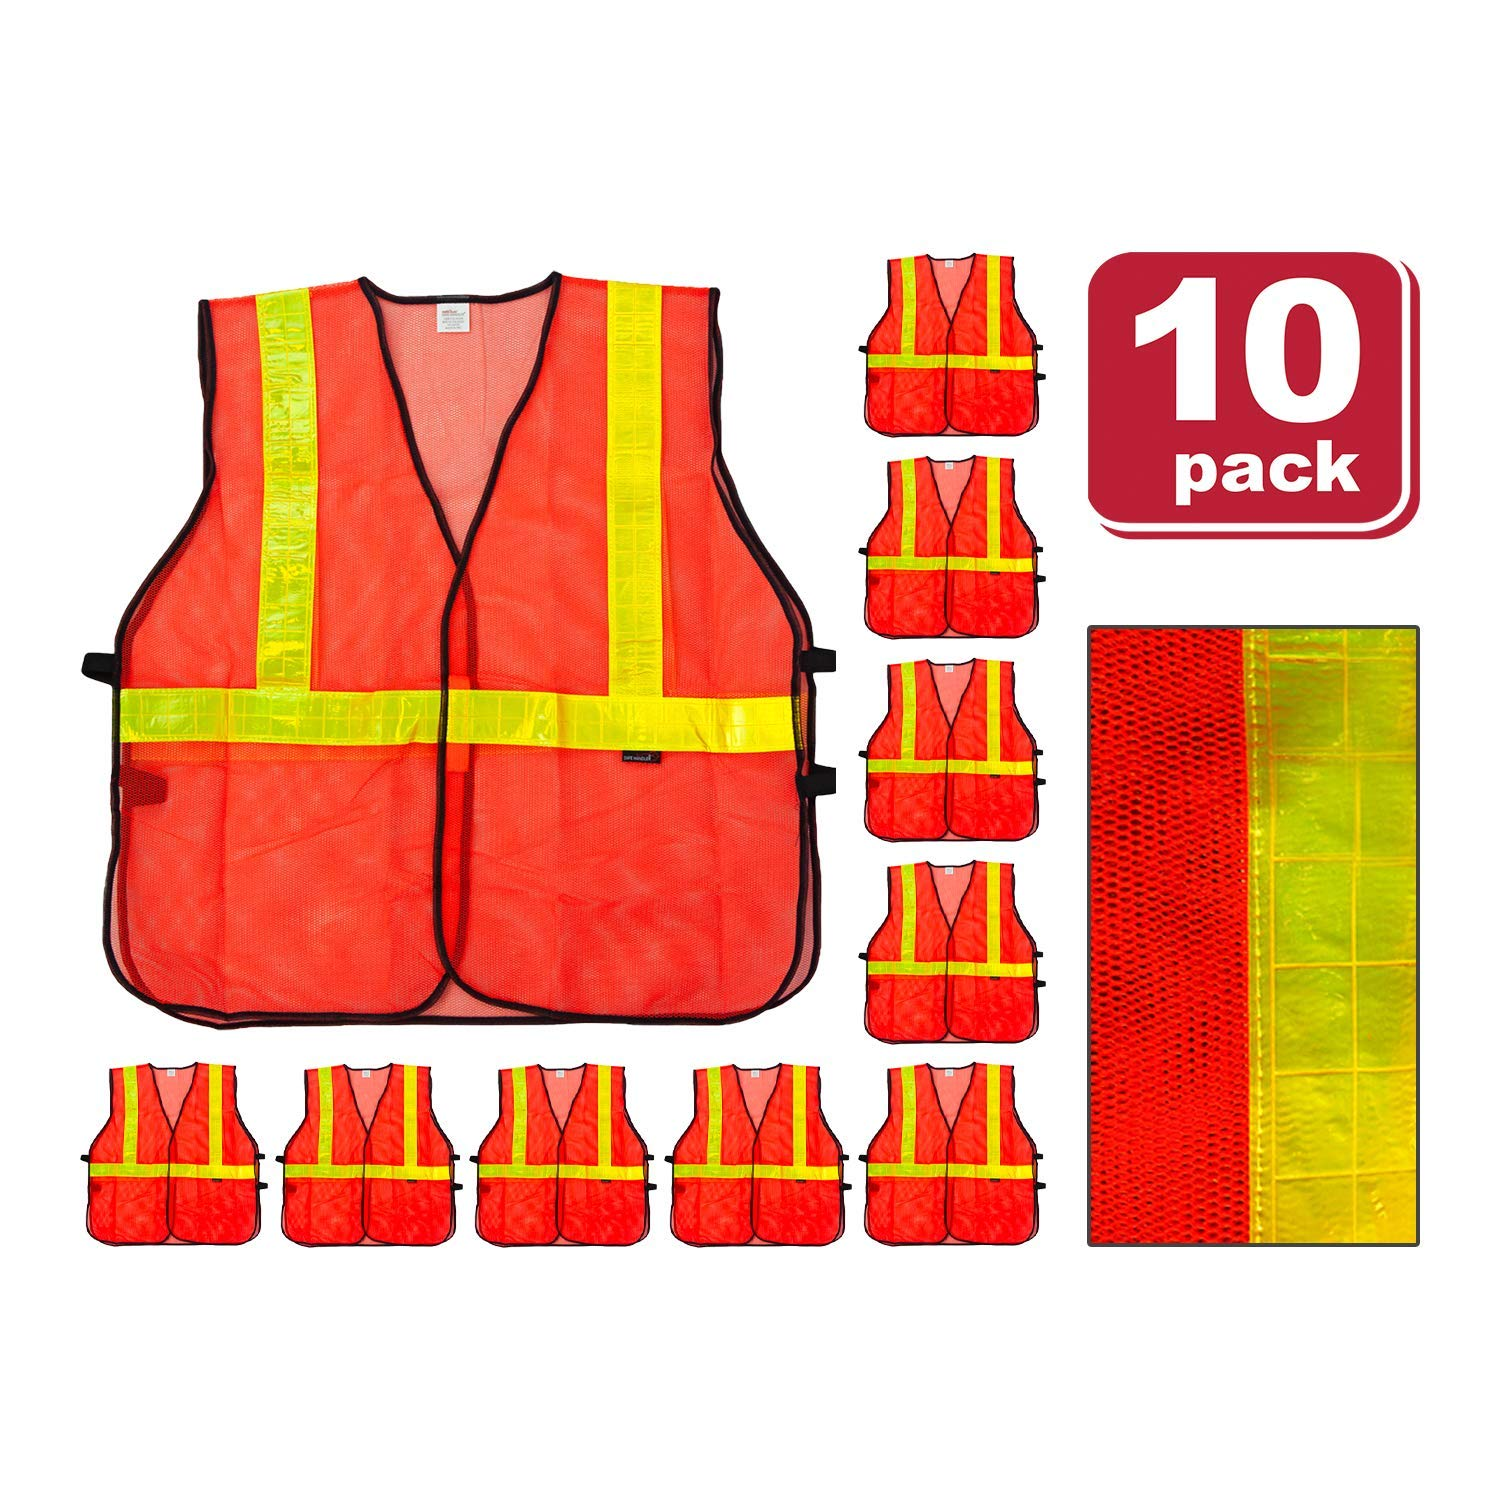 SAFE HANDLER Lattice Reflective Safety Vests   Lightweight and Breathable, Fluorescent Fabric, Hook & Loop Closure, Mesh Fabric, ORANGE, XX-Large, 10 PACK